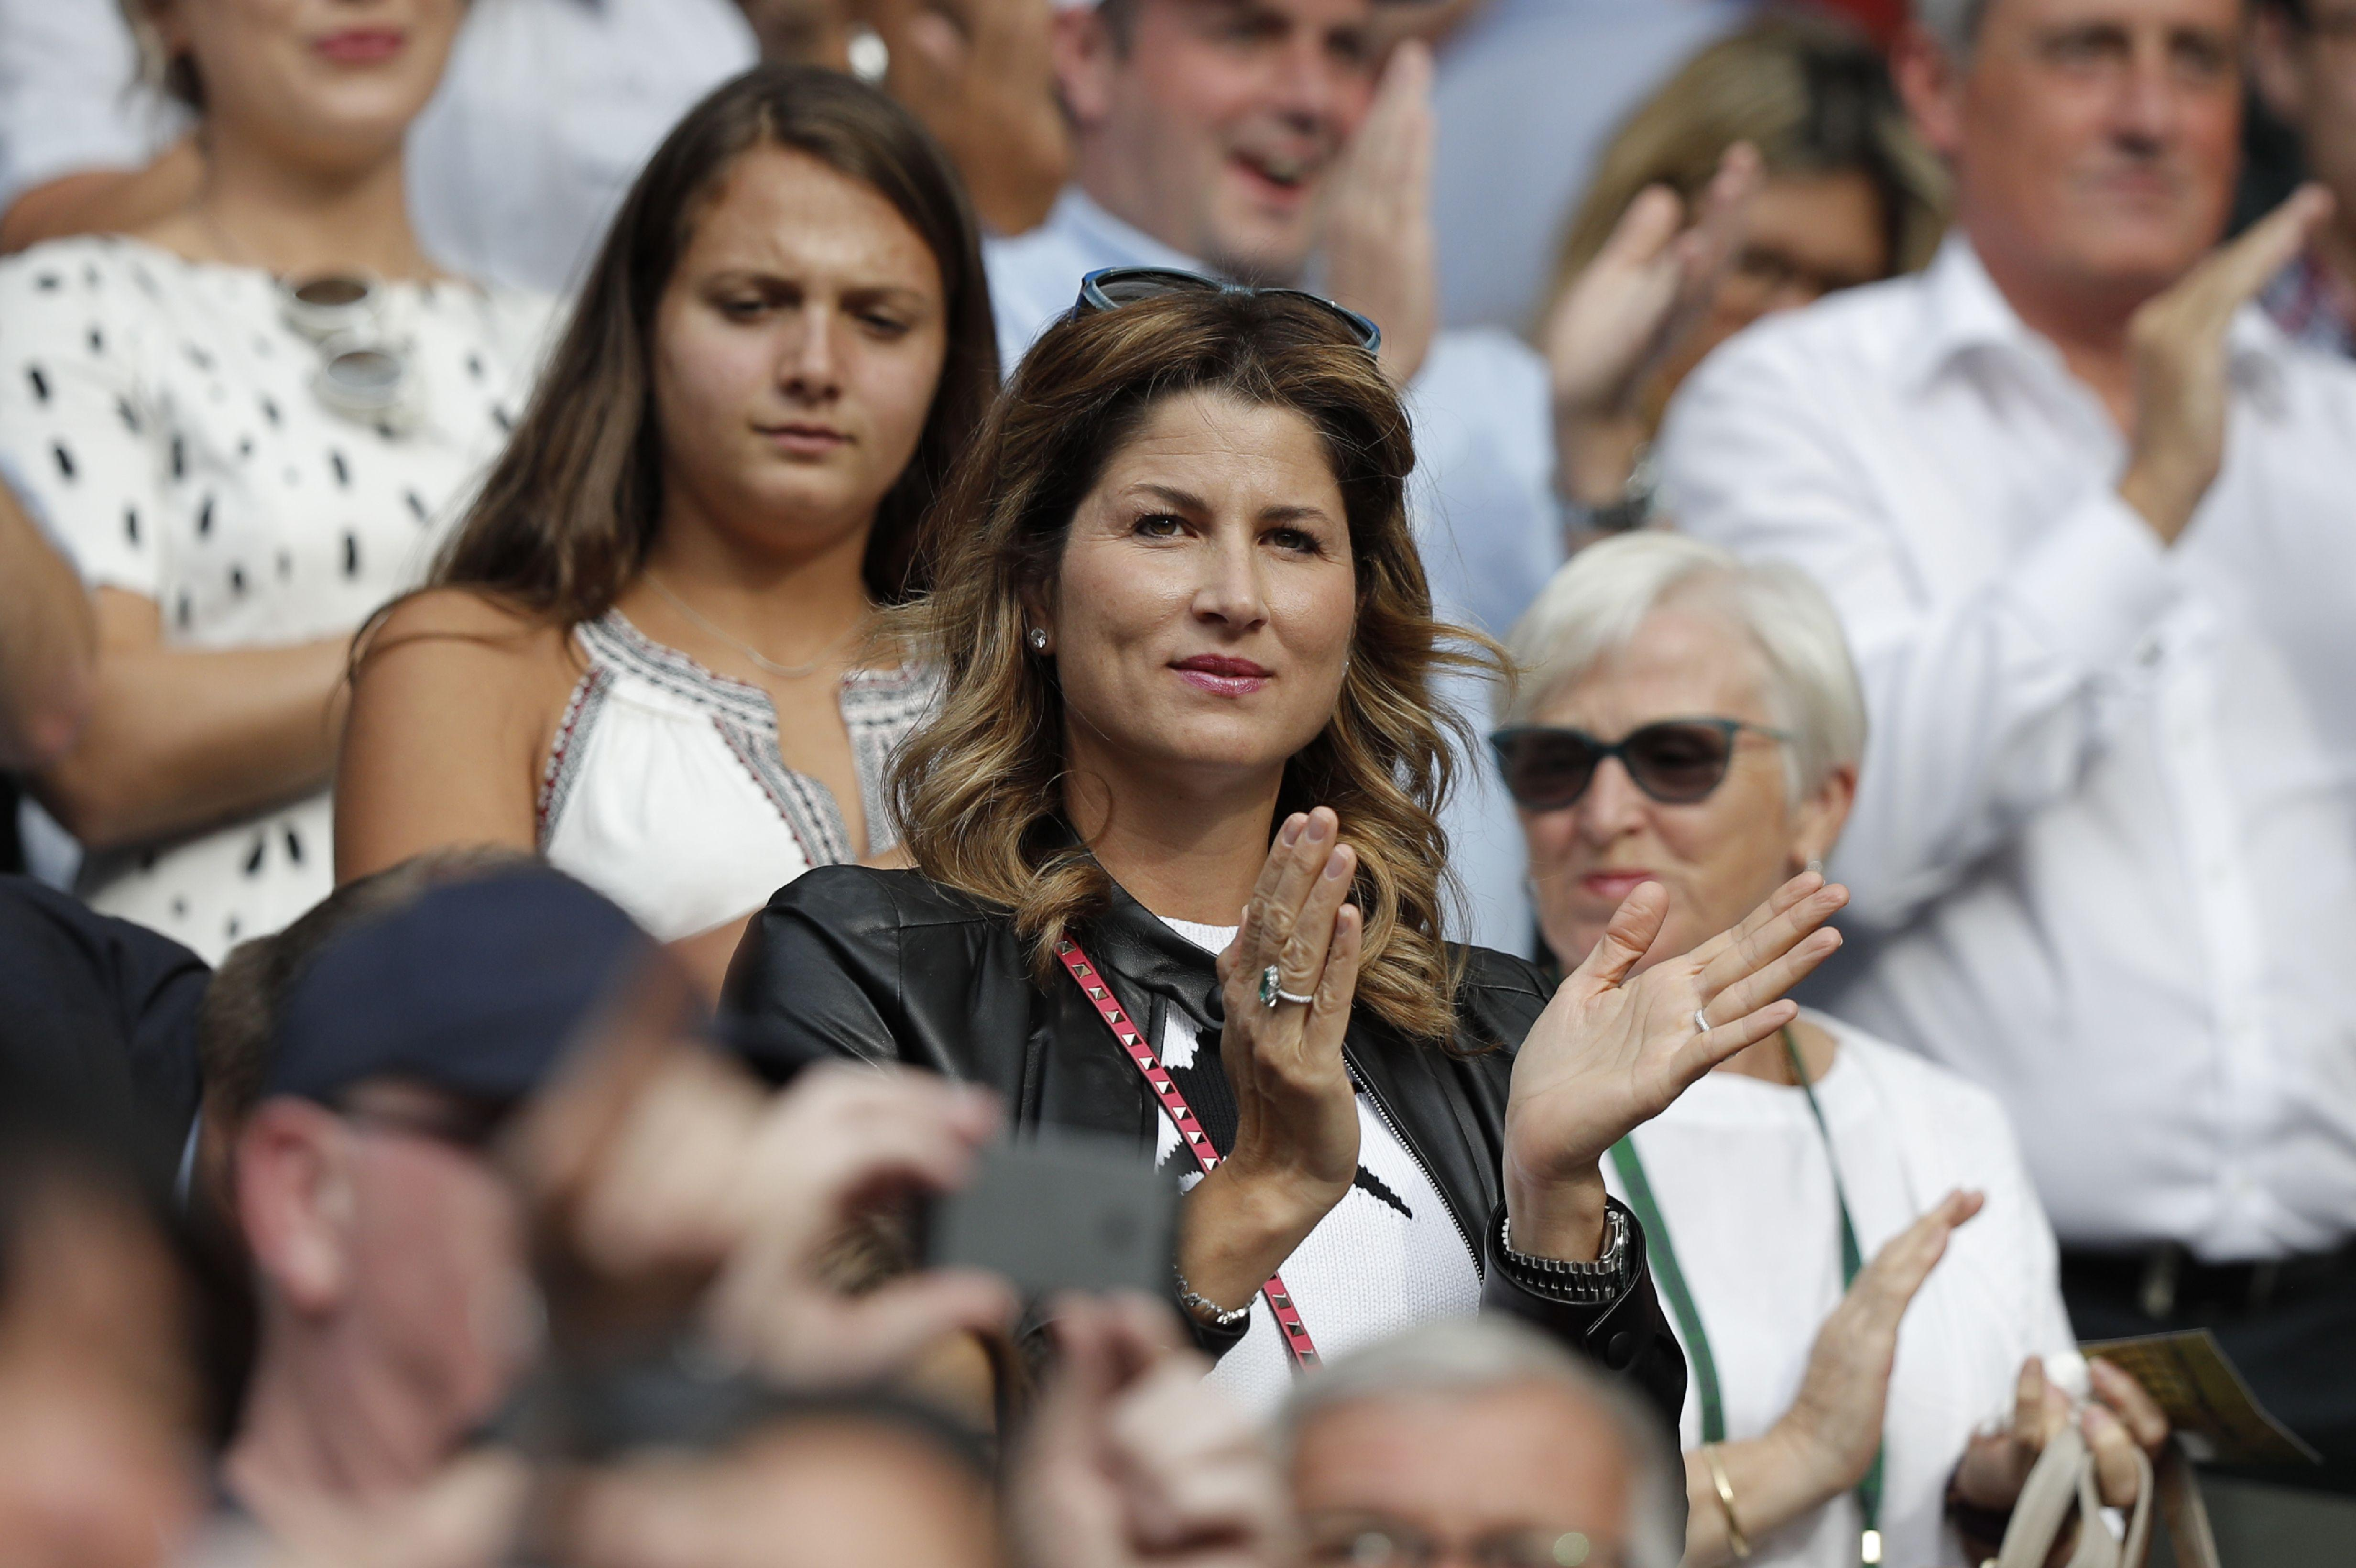 The ex-tennis pro can regularly be spotted in the crowd at major sporting events